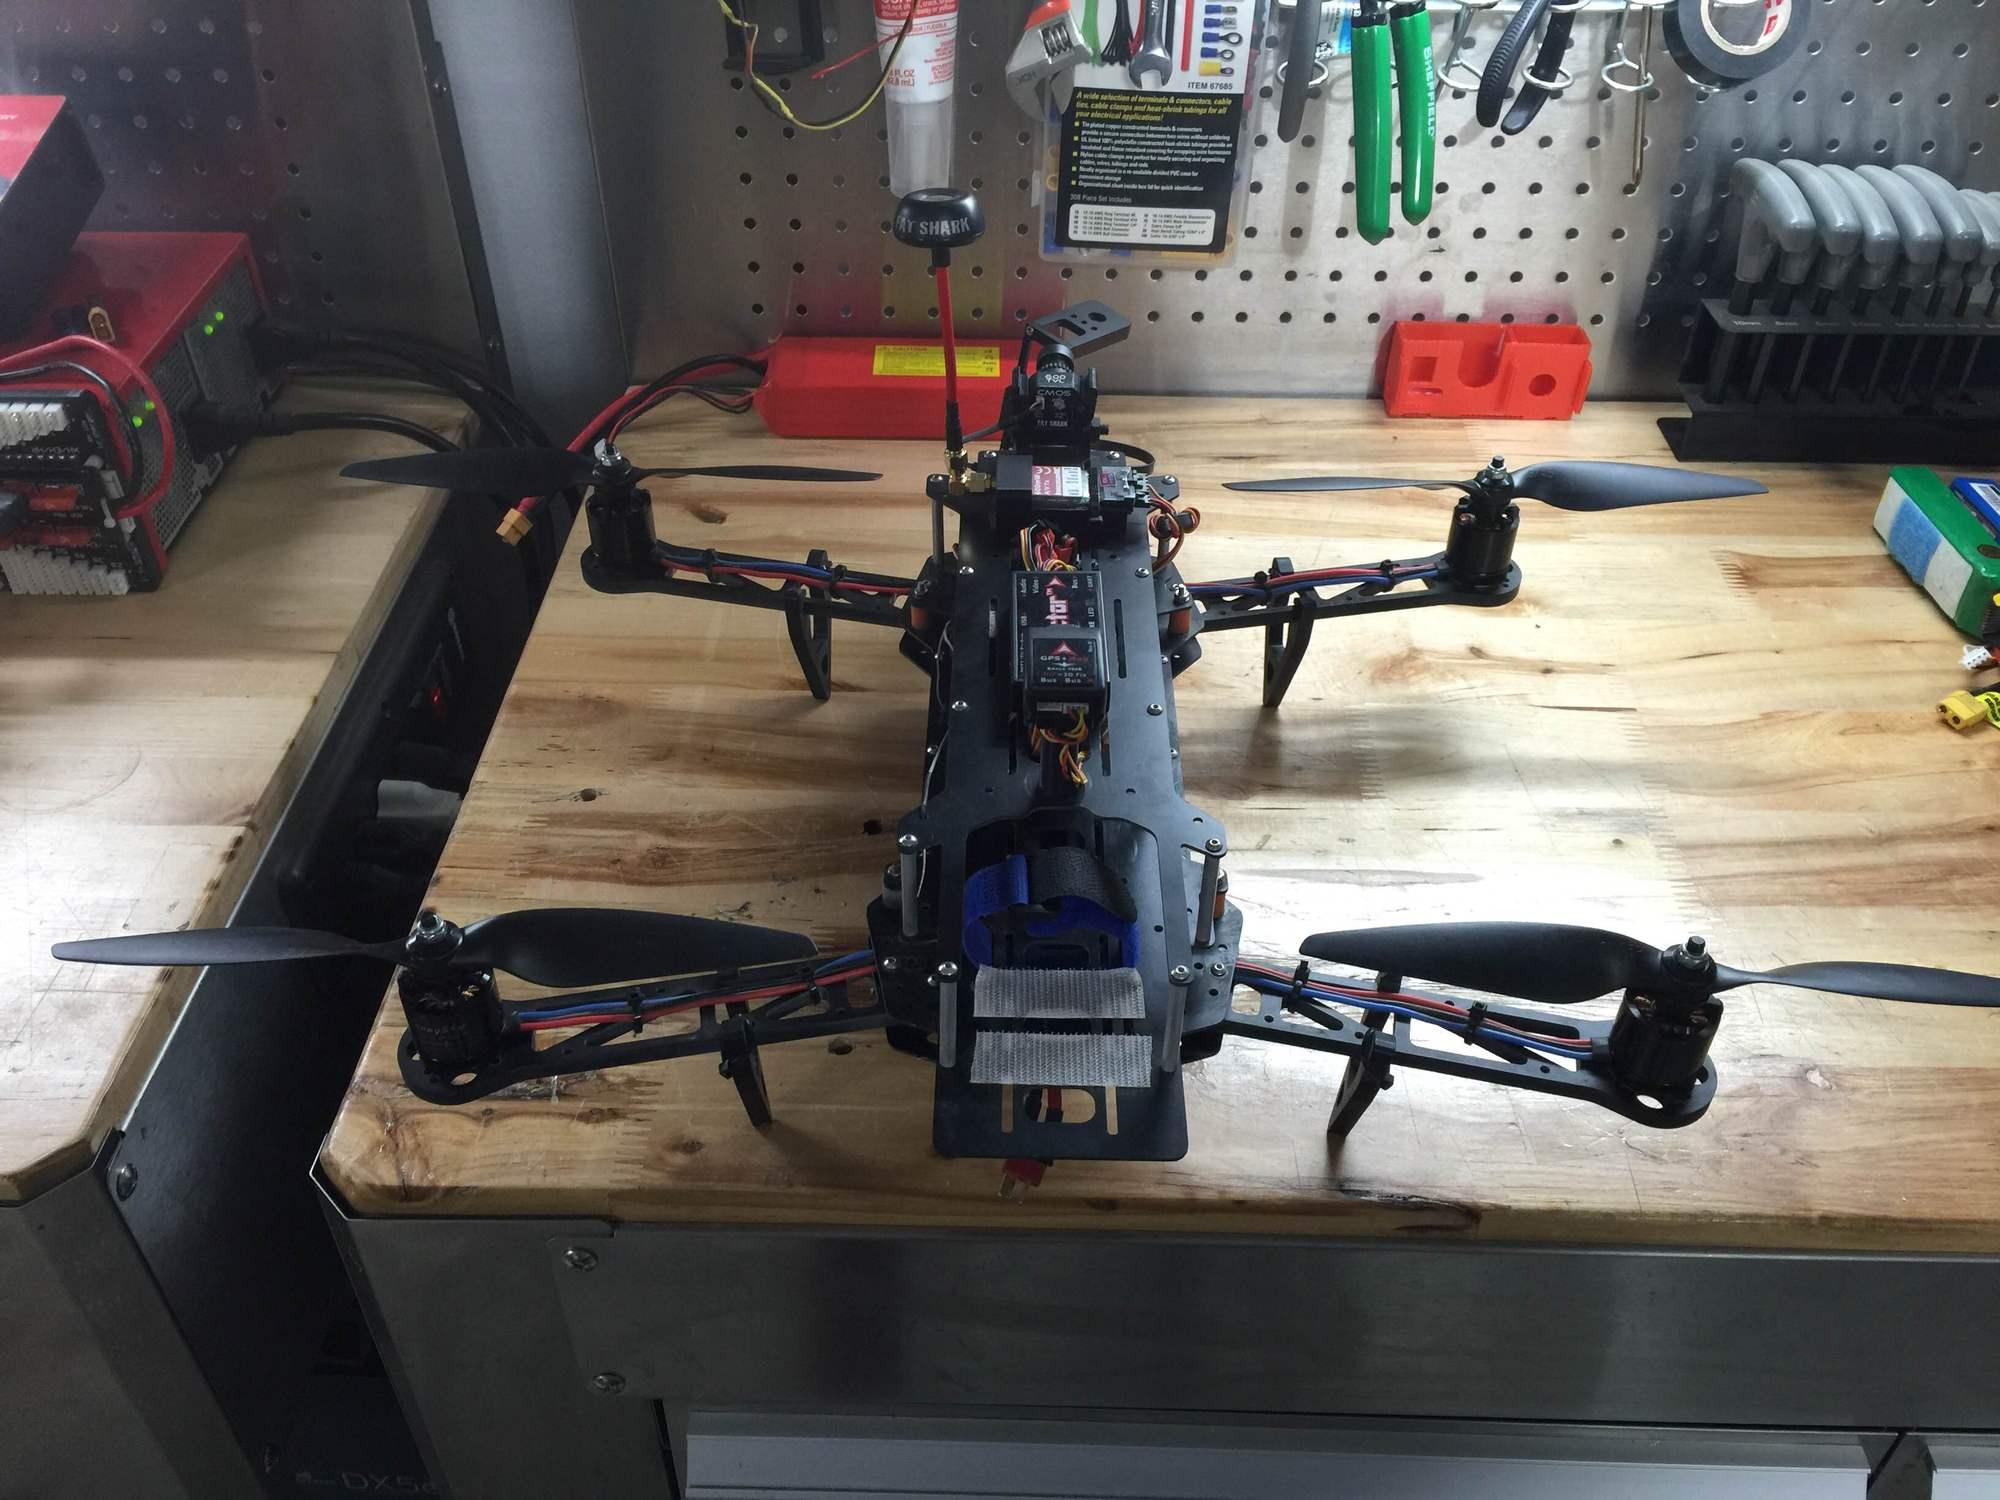 Sold Hoverthings Flip Pro Aerial Photography Videography